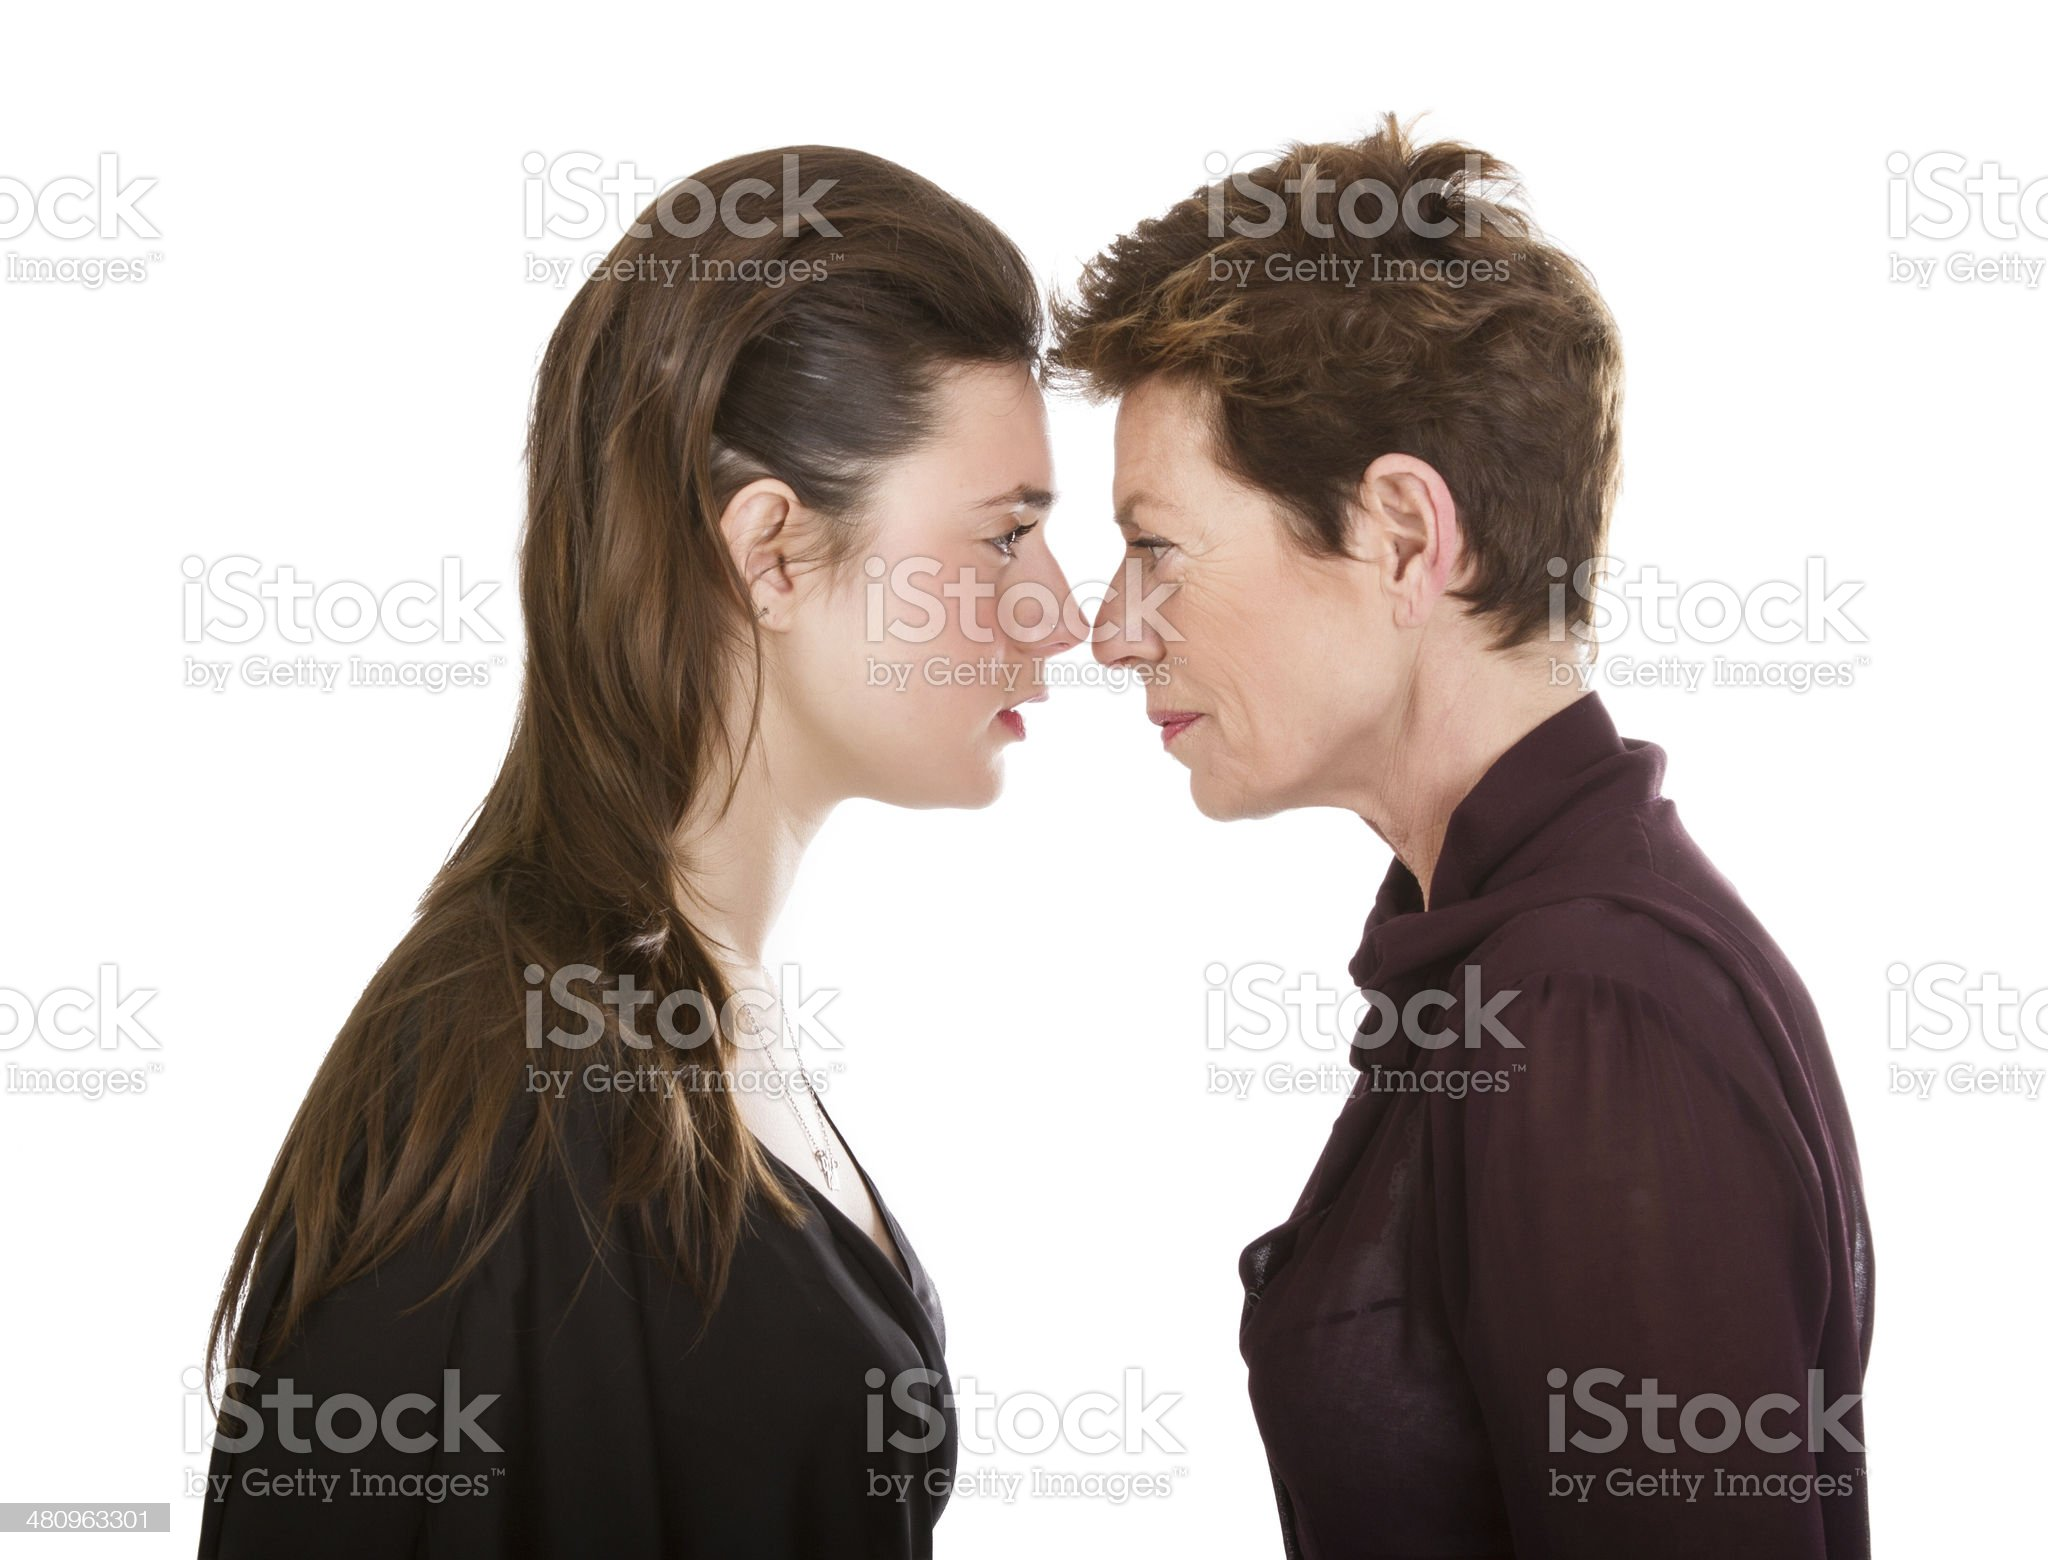 generational difference metaphor royalty-free stock photo